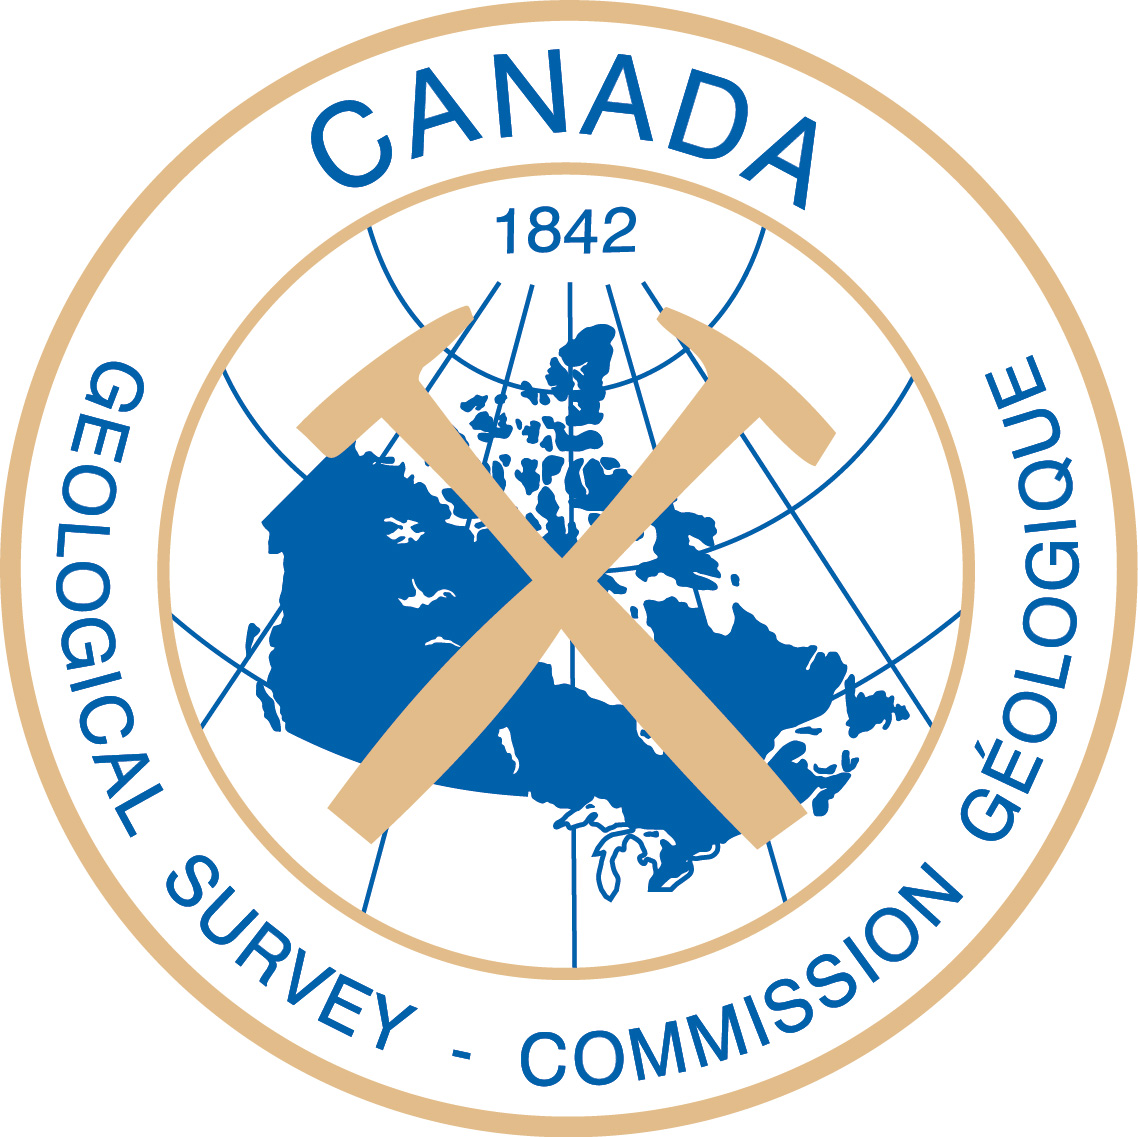 Geological Survey of Canada